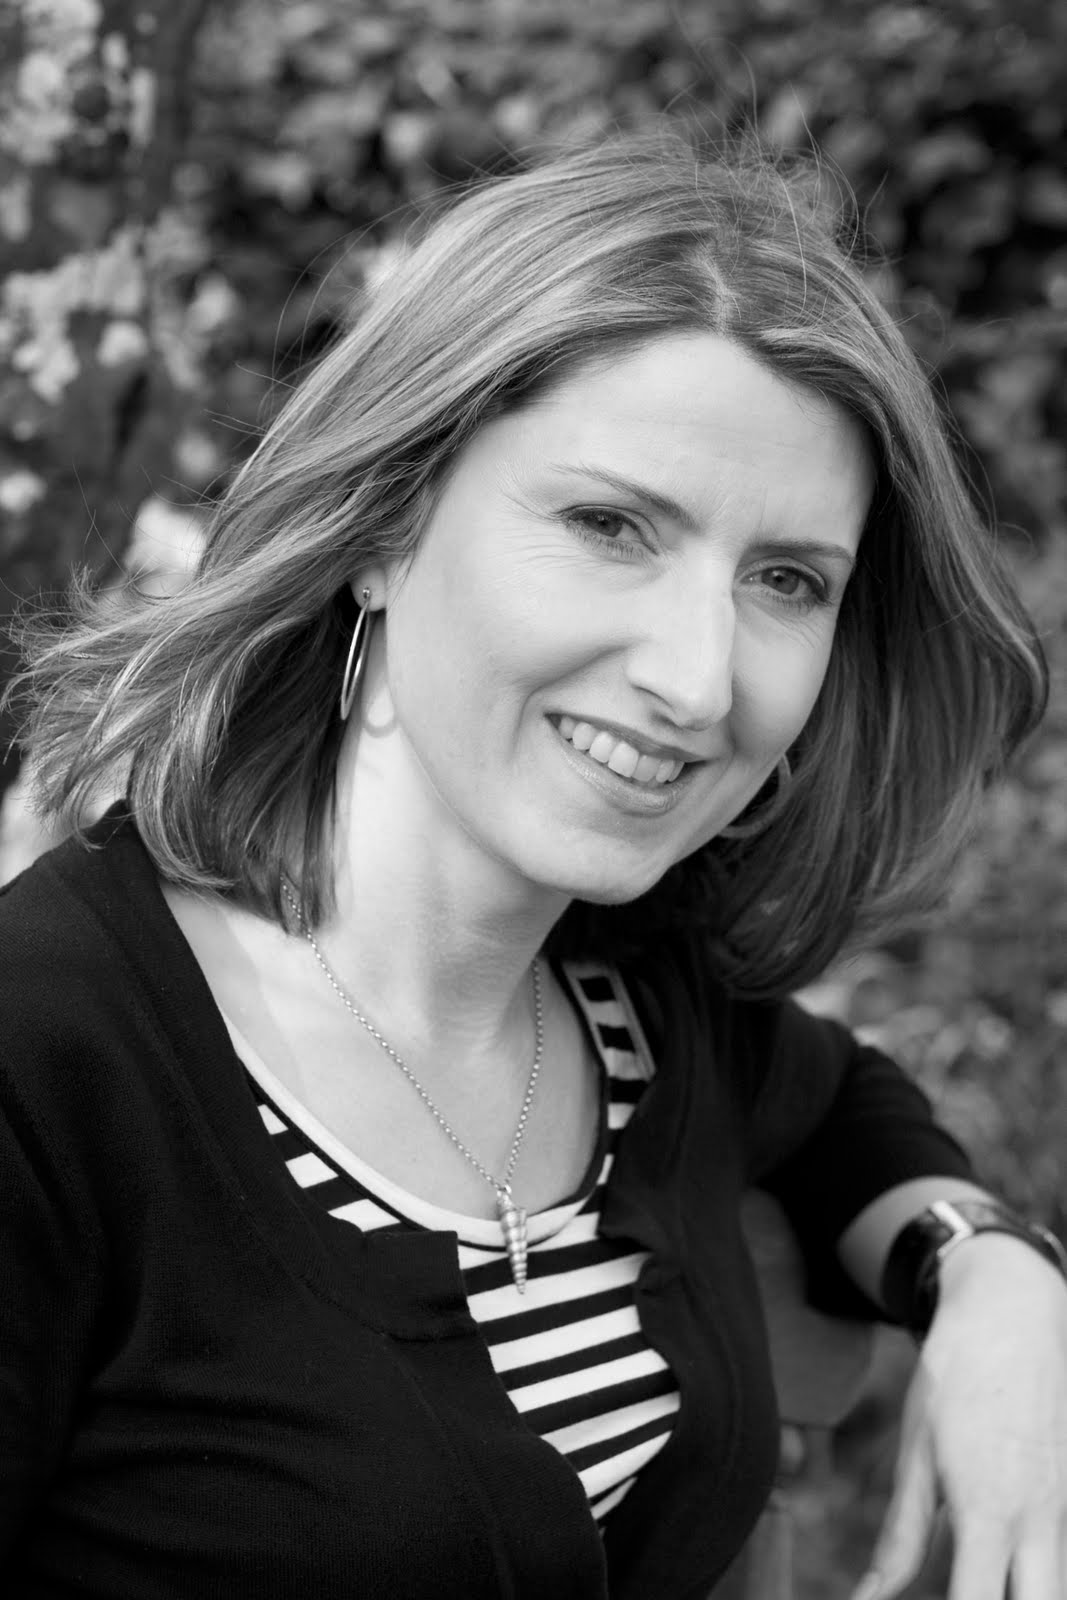 This week I'm delighted to present my interview with author Isabel Ashdown.